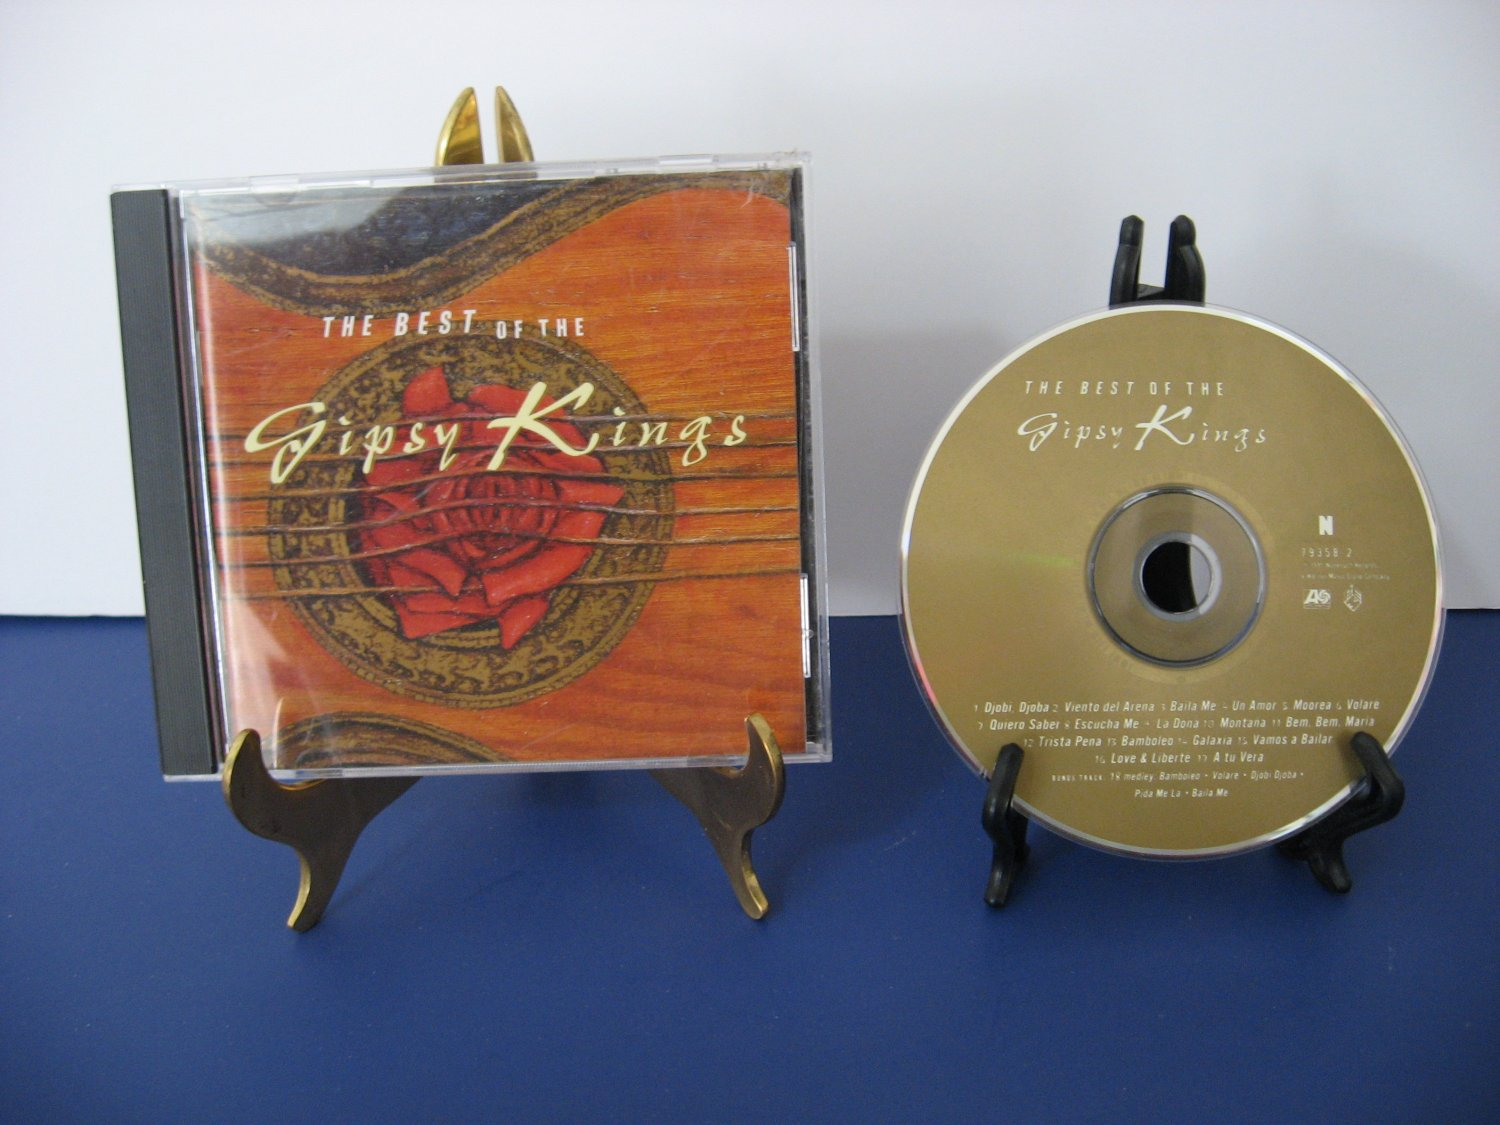 The Gipsy Kings - The Best Of The Gipsy Kings - Compact Disc